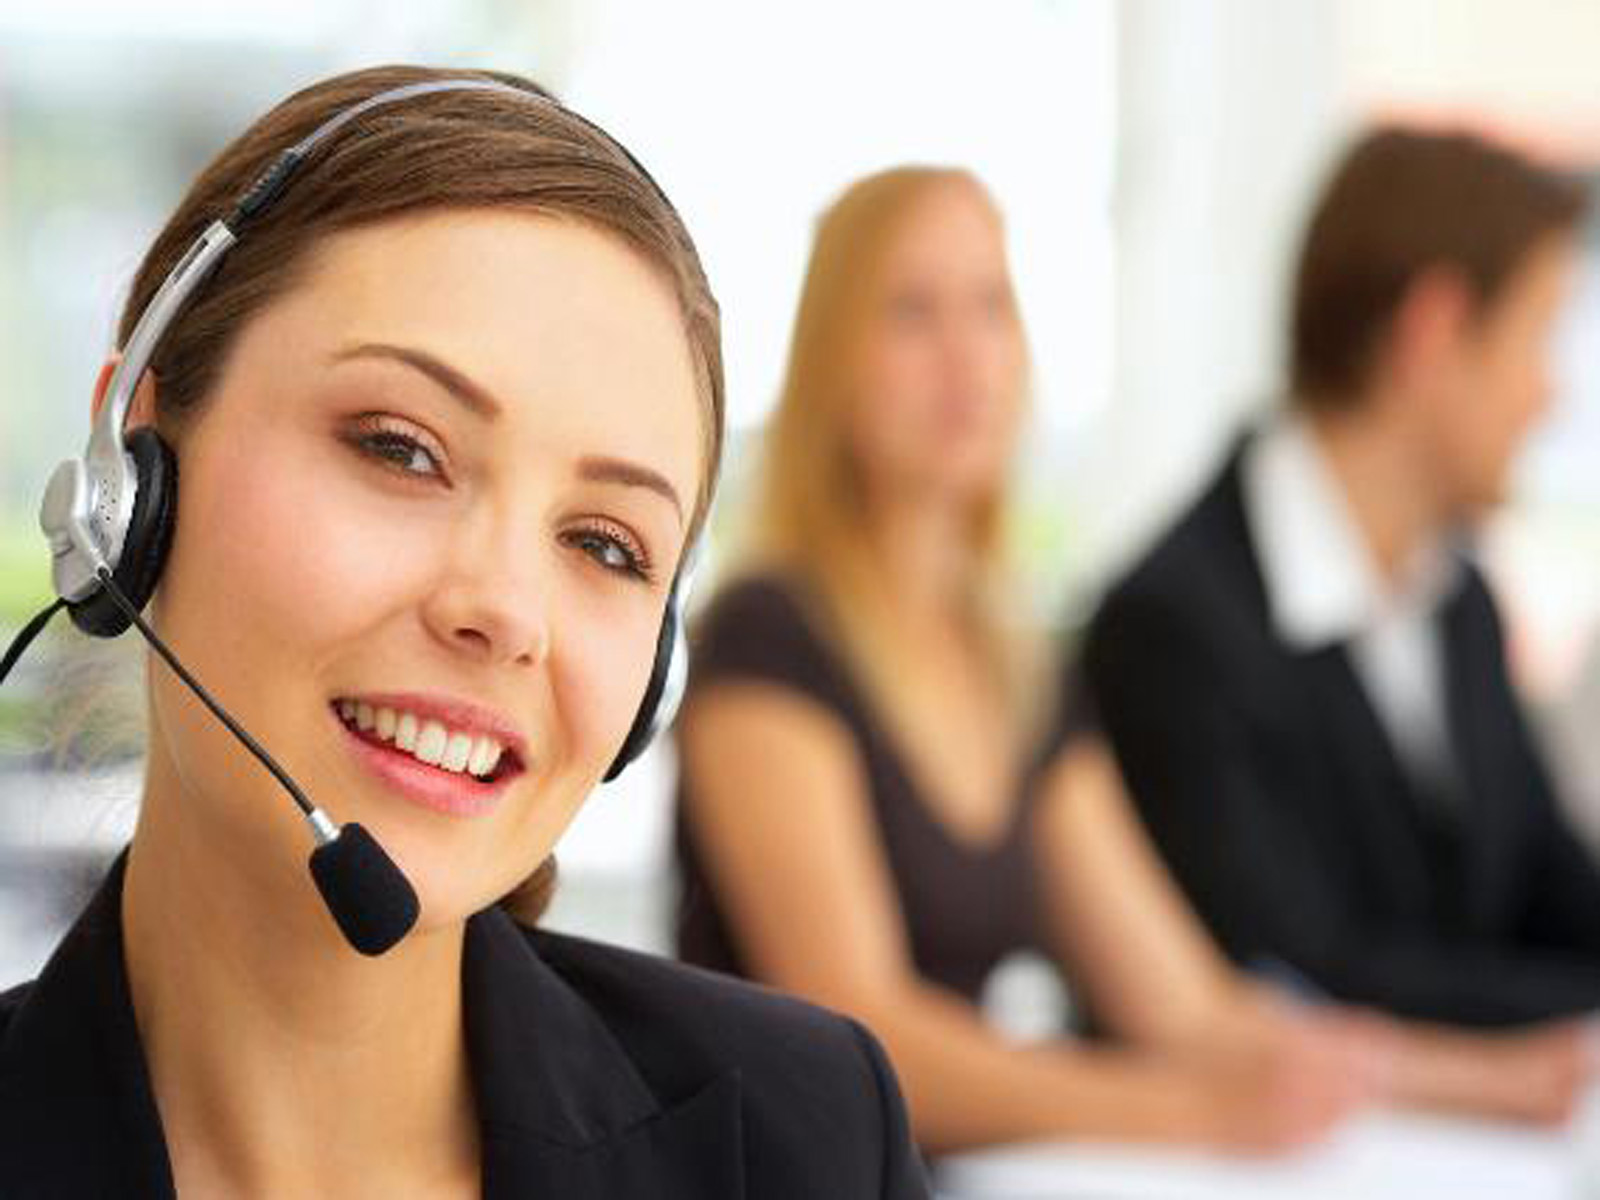 Call Center and Self-Service